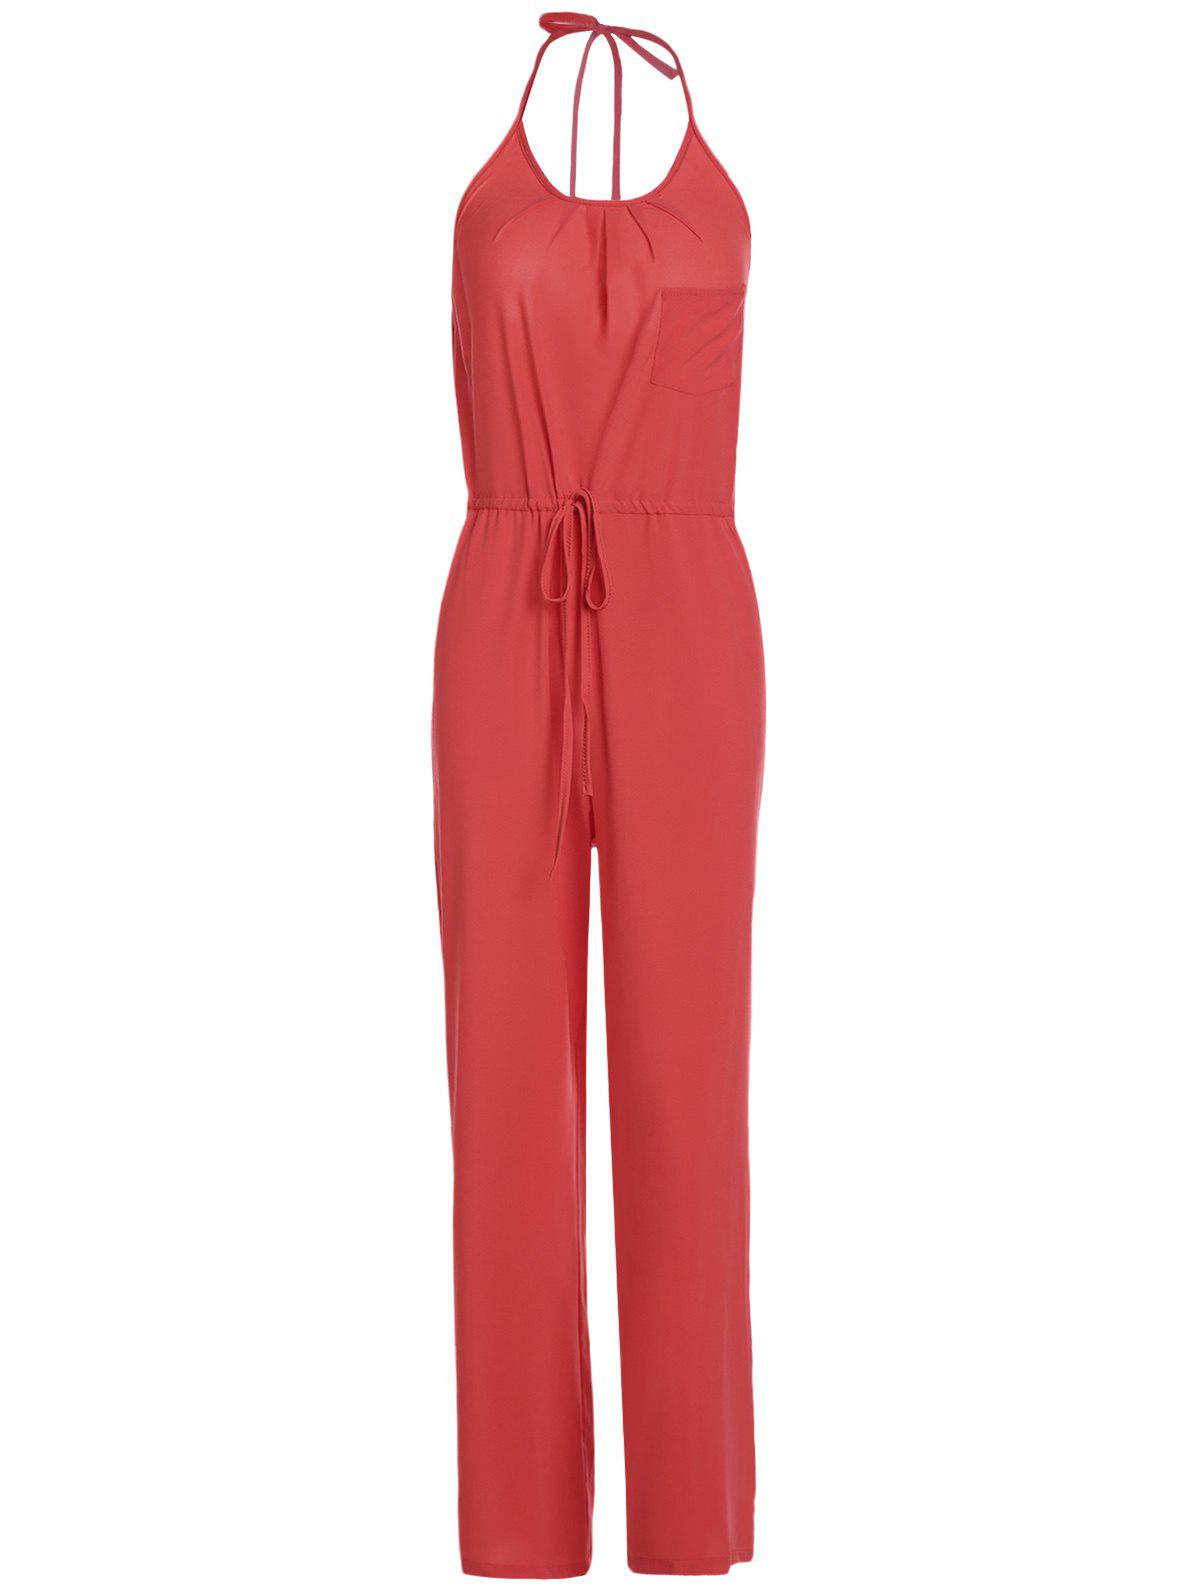 Chic Pure Color Spaghetti Strap Wide Leg Loose Jumpsuit For Women - RED S